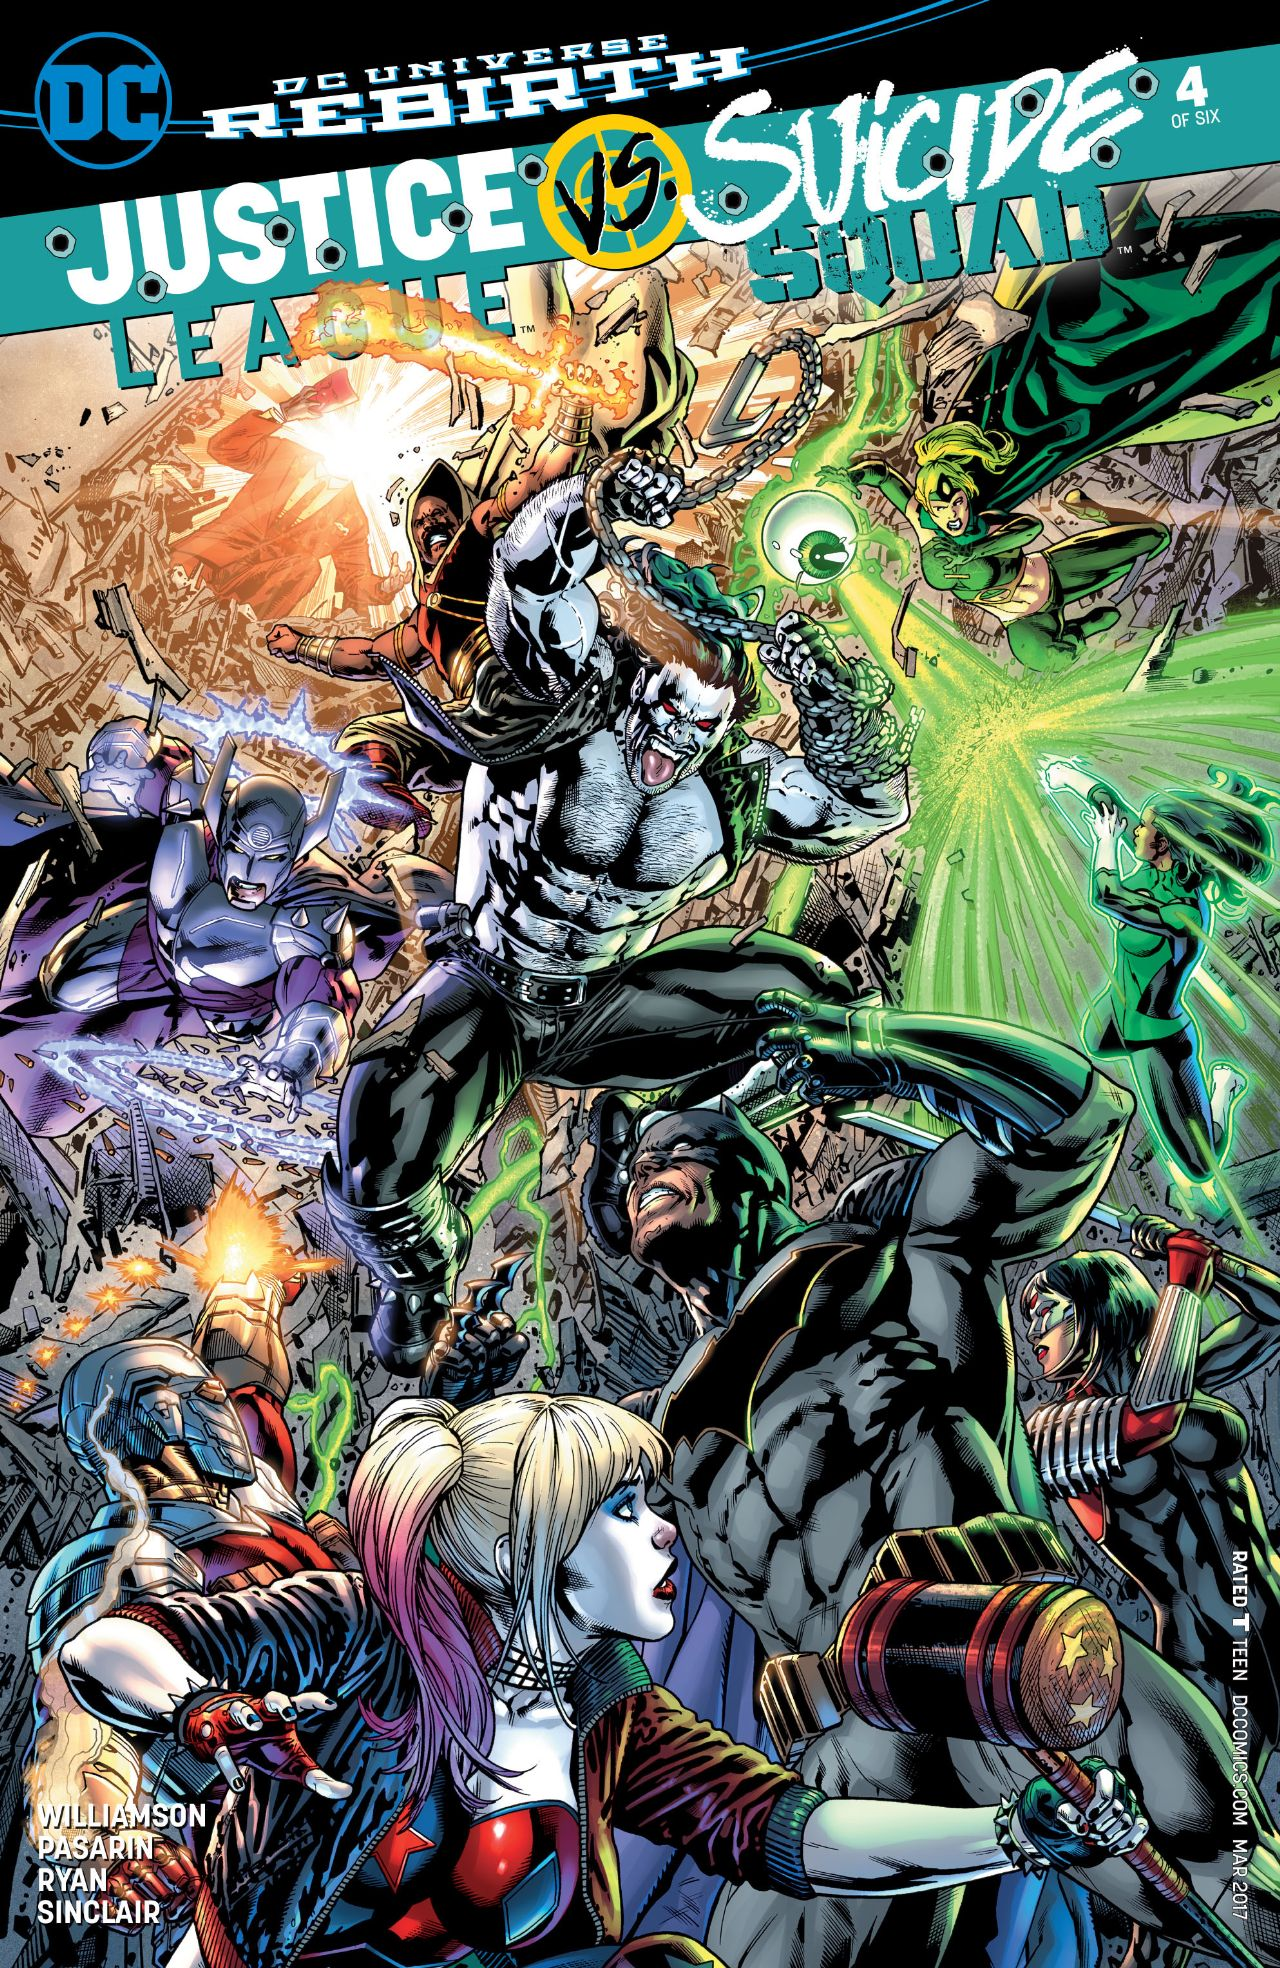 Justice League vs. Suicide Squad Vol 1 4